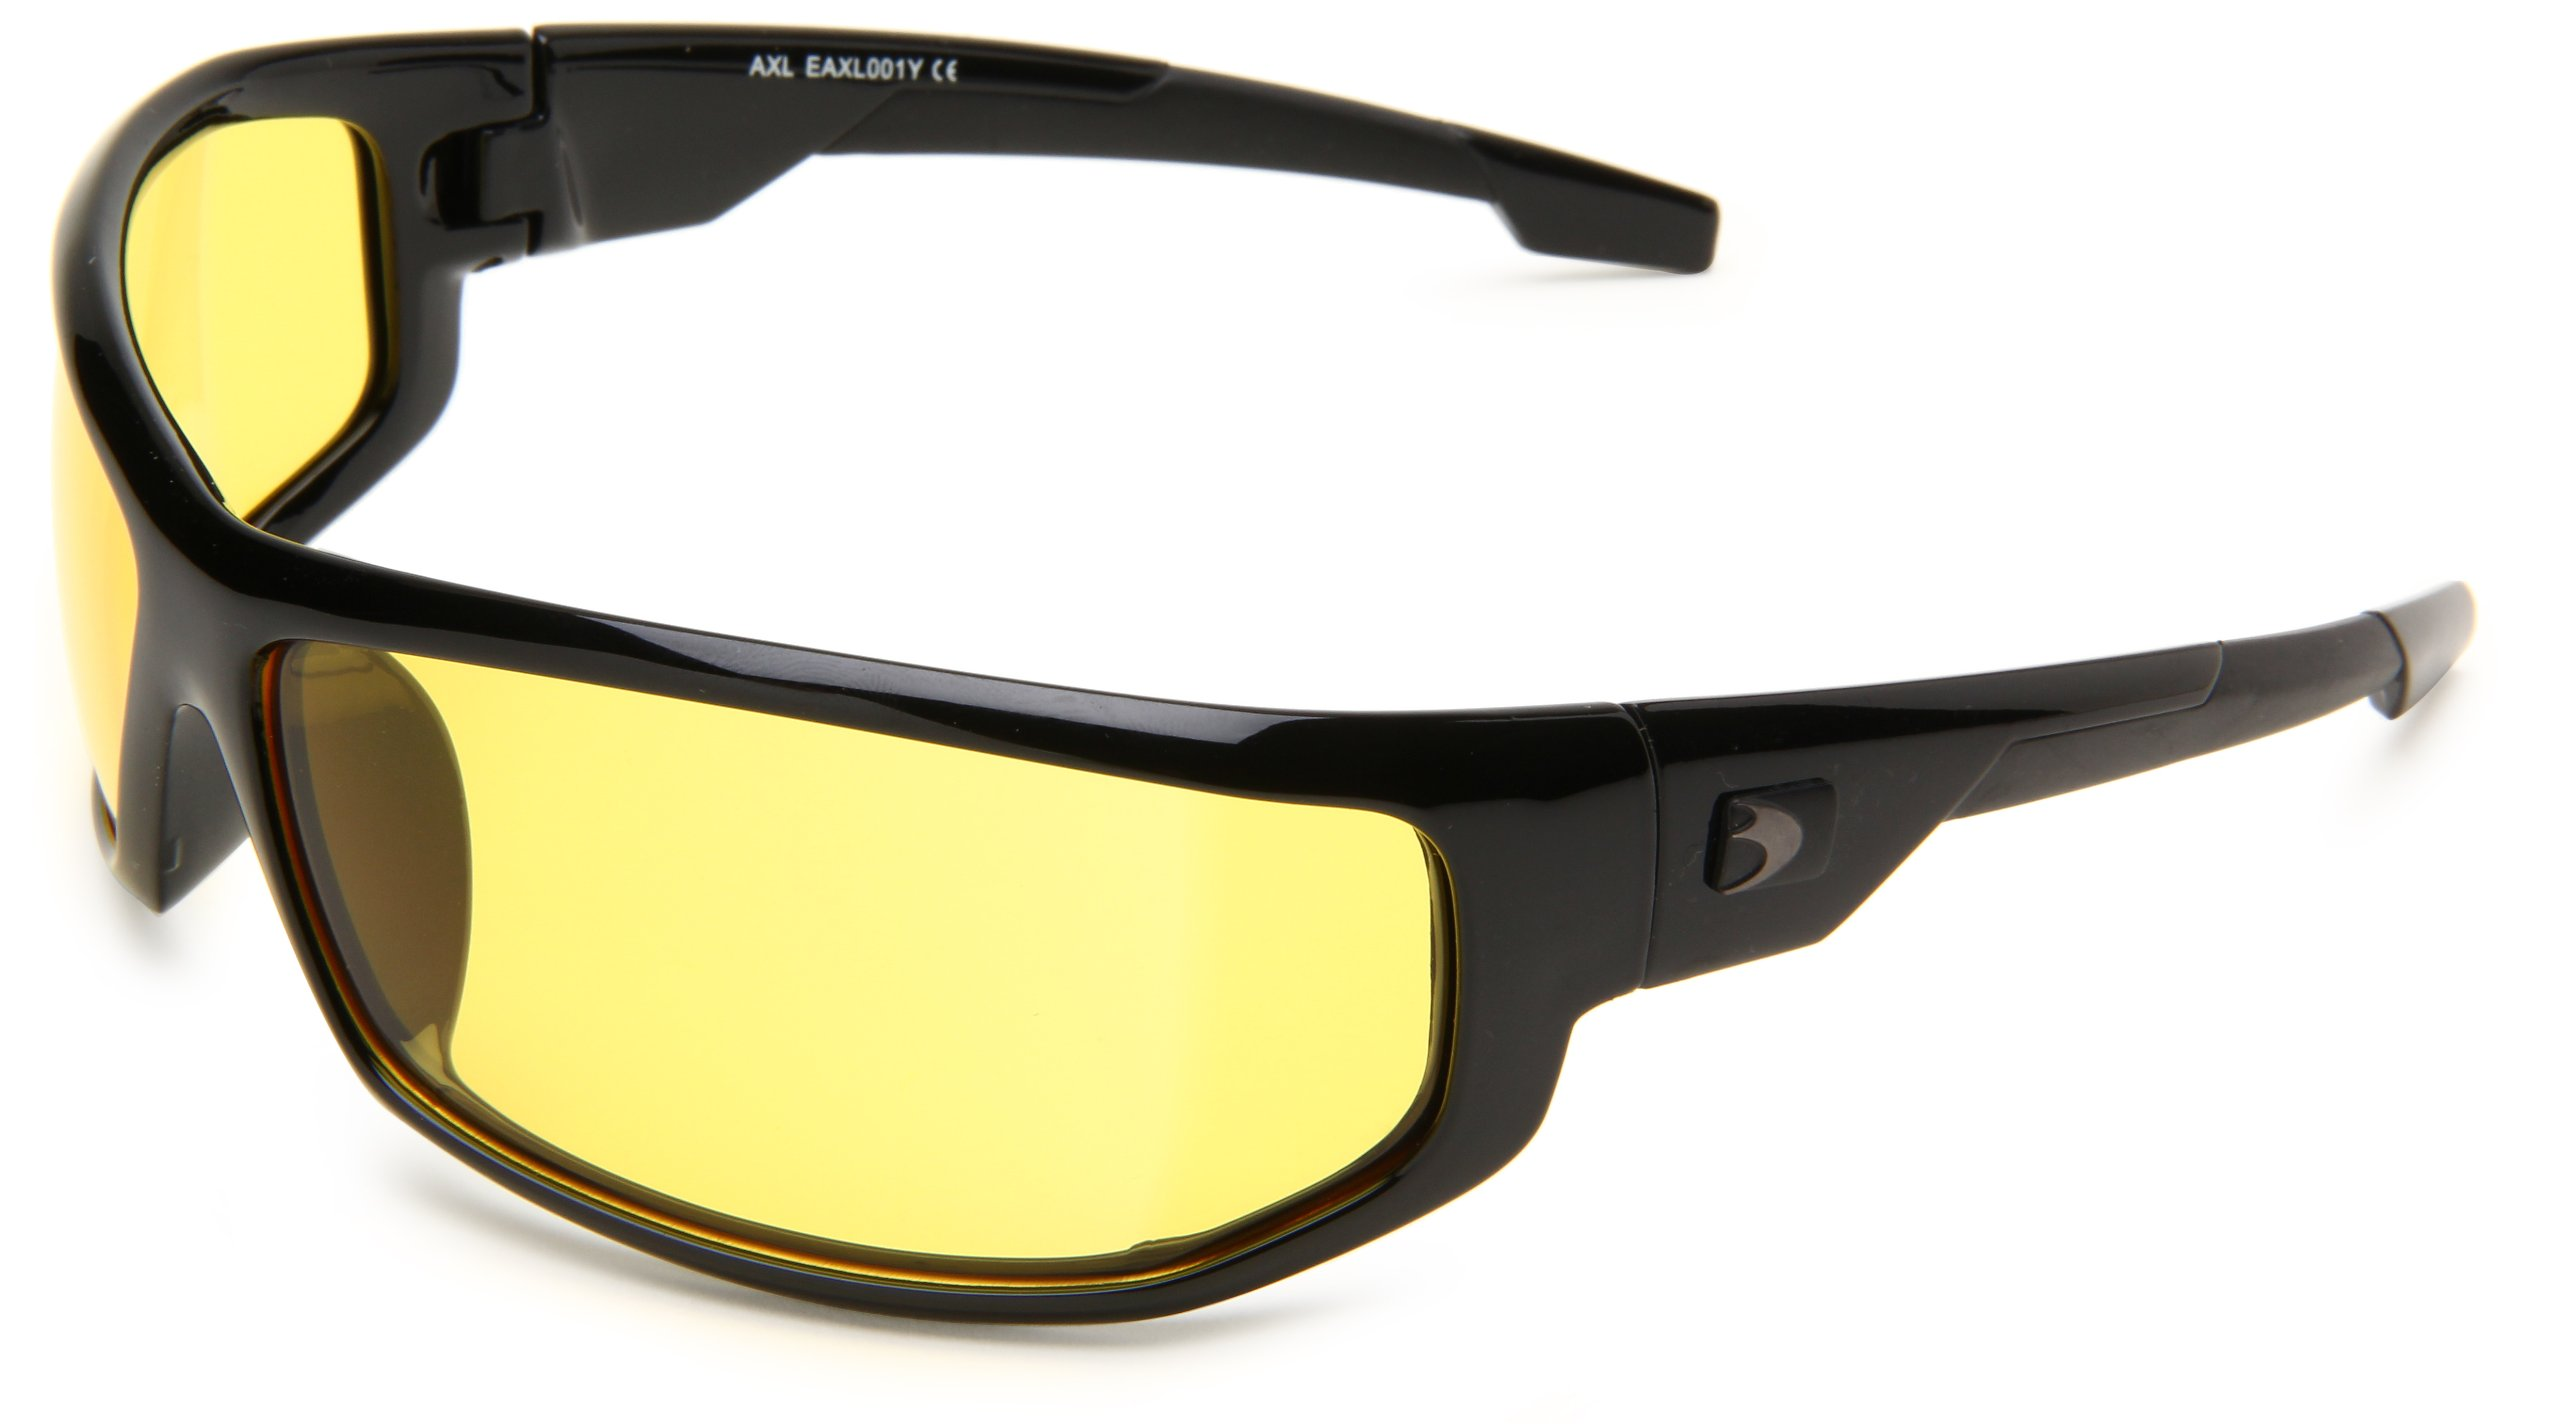 Bobster AXL Wrap Sunglasses, Black Frame/Yellow Anti-fog Lens by Bobster